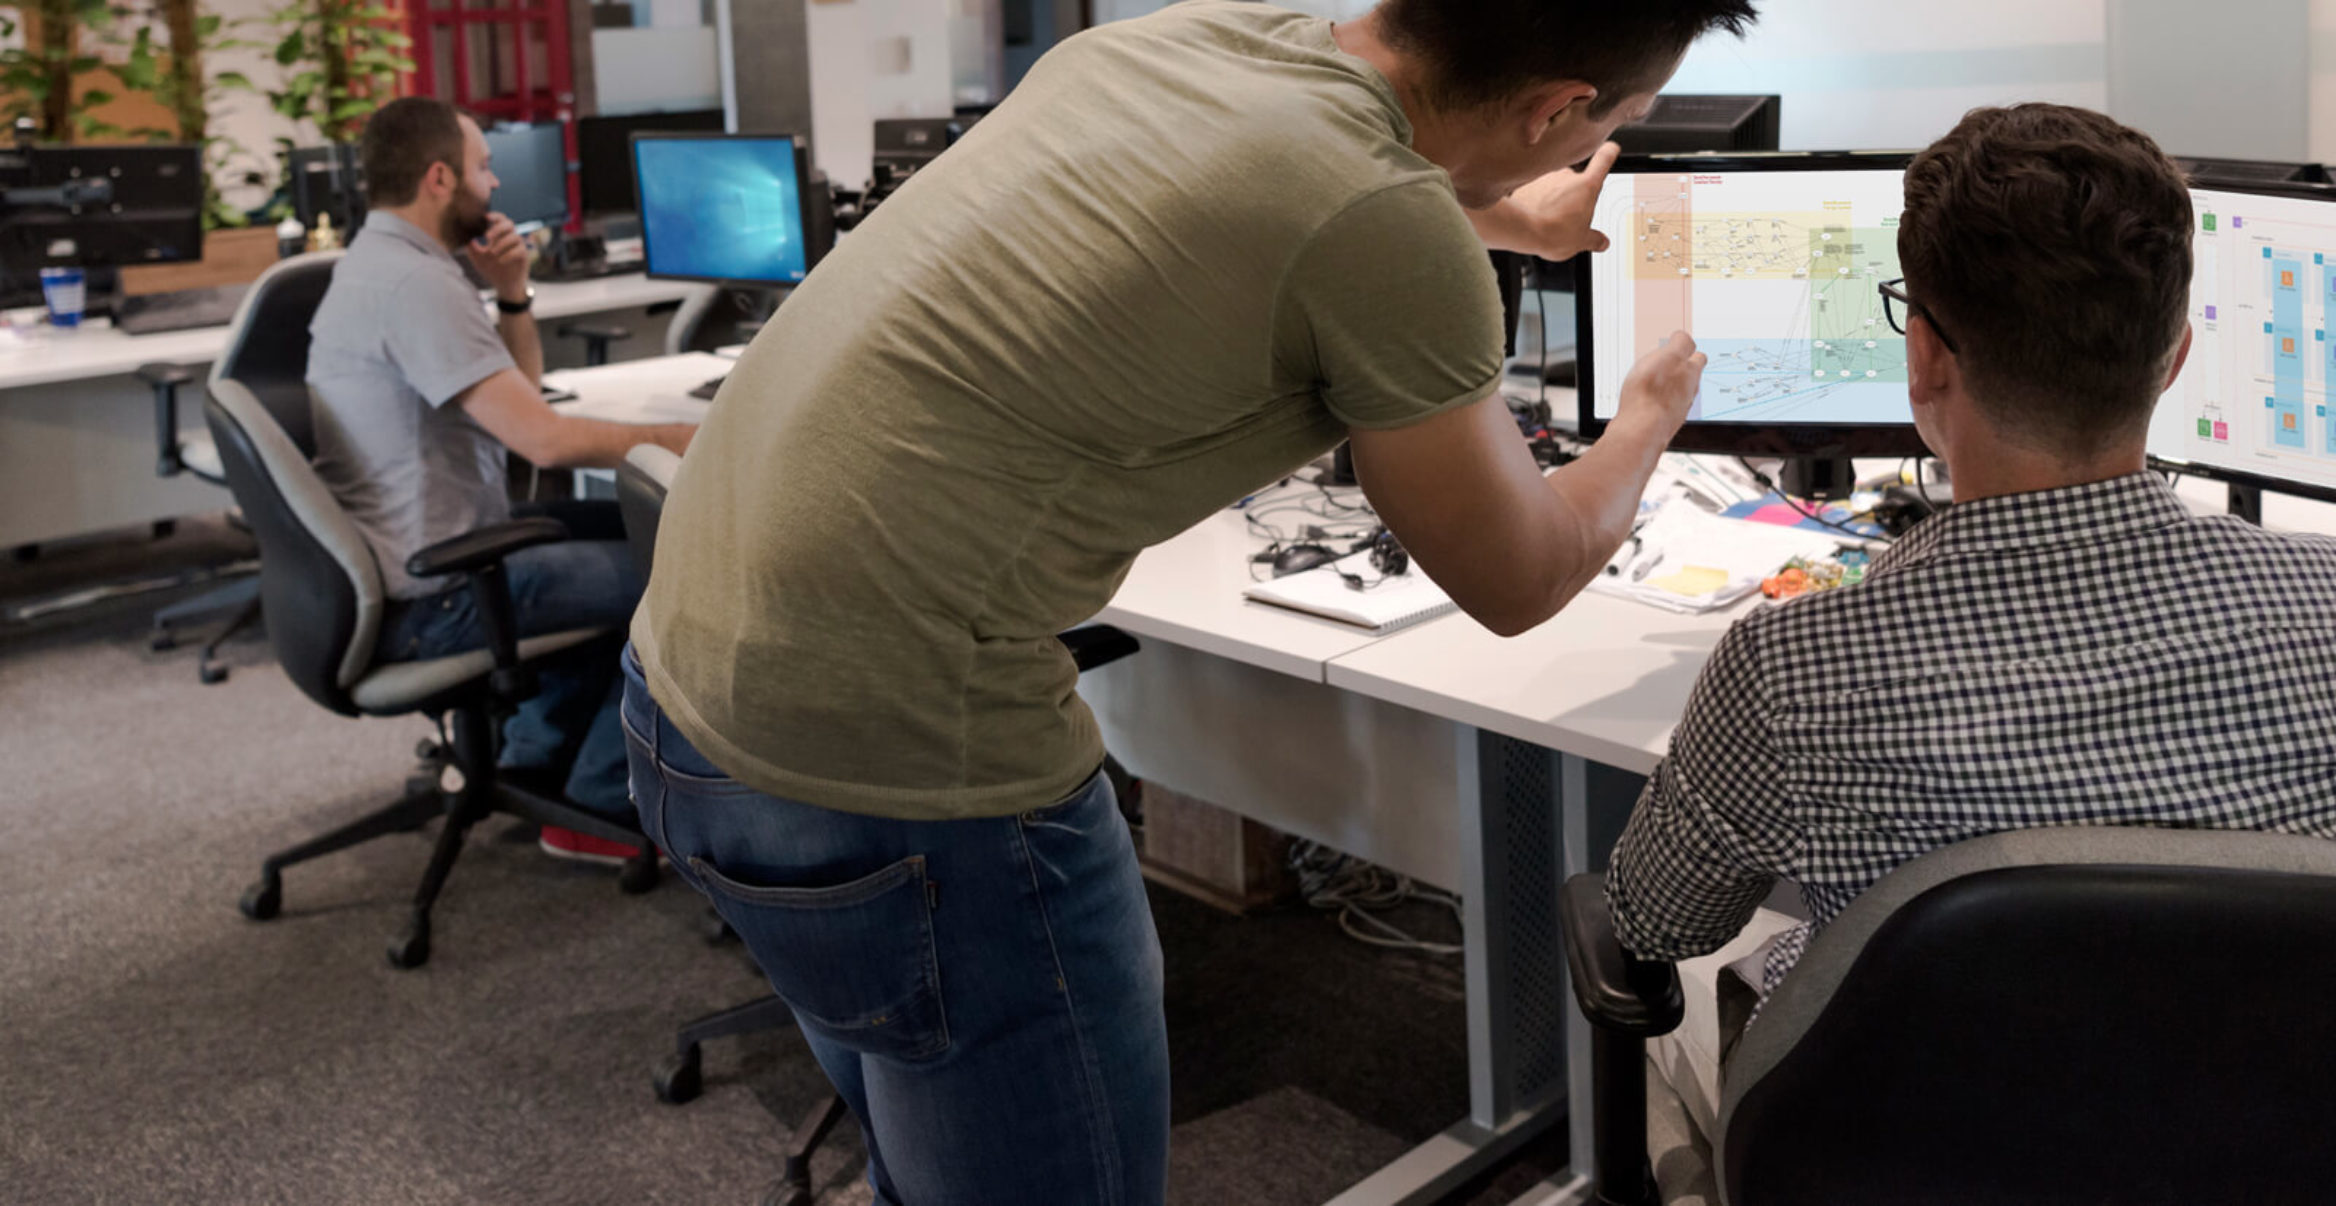 two people collaborating at desktop computer screens.